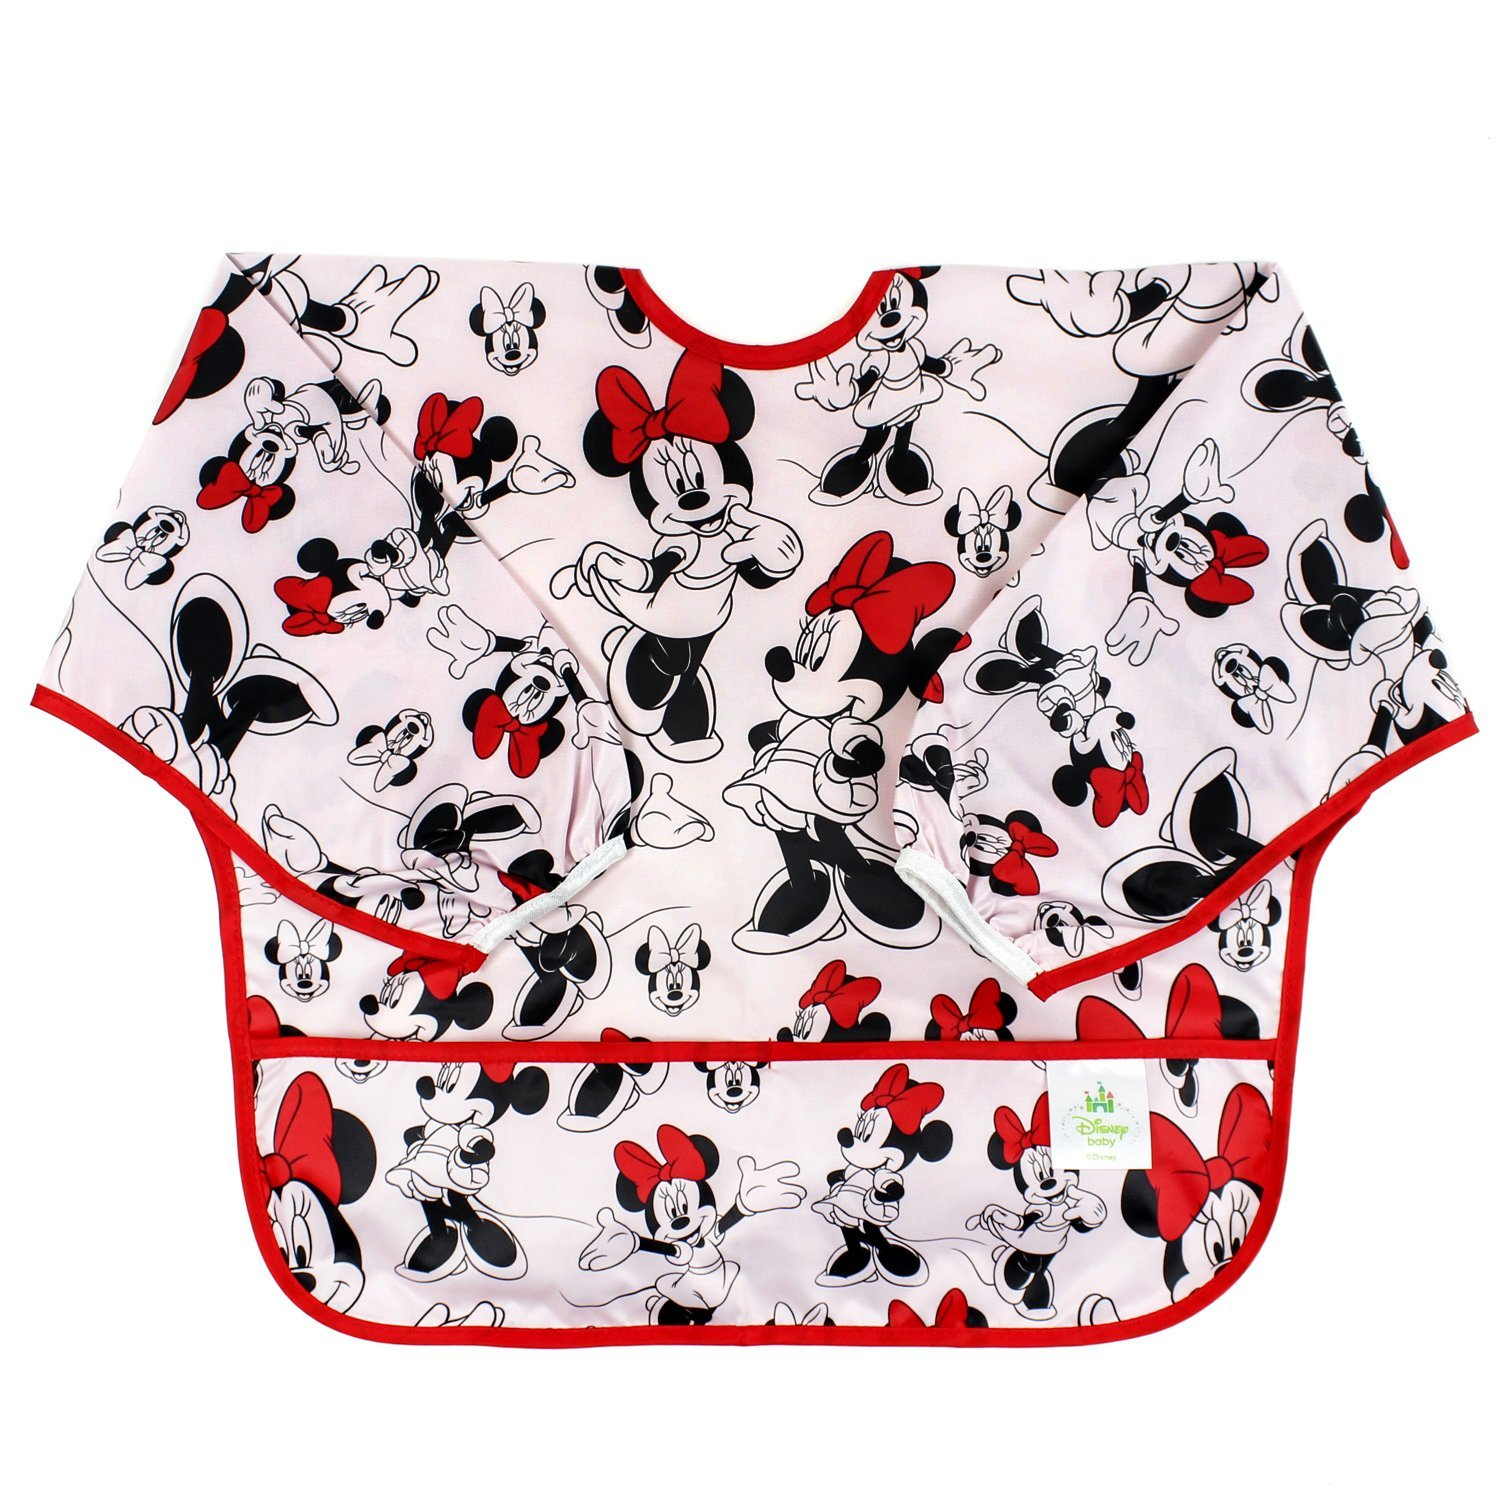 Bumkins Disney Minnie Mouse Sleeved Bib / Baby Bib / Toddler Bib / Smock, Waterproof, Washable, Stain and Odor Resistant , 6-24 Months - Classic by Bumkins